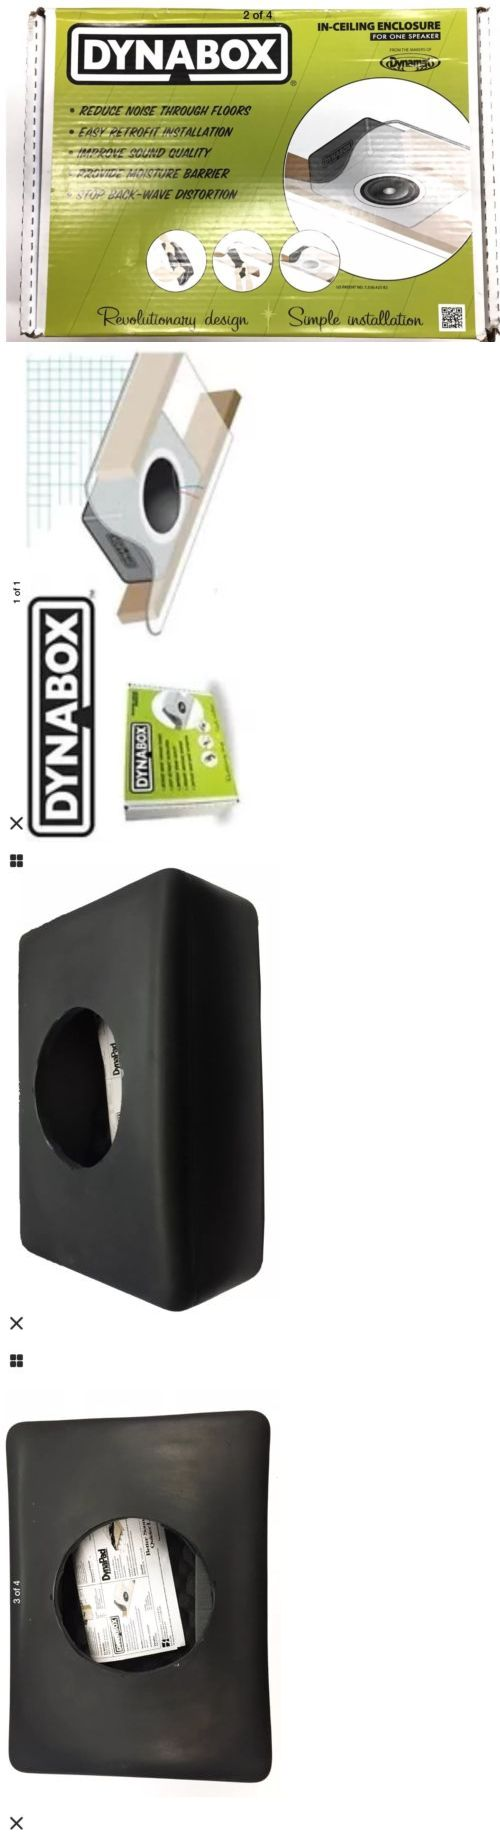 Home Theater Systems: Dynamat 50306 Dynabox Speaker Enclosure For In Ceiling Speakers (12 Remaining!) -> BUY IT NOW ONLY: $79.99 on eBay!